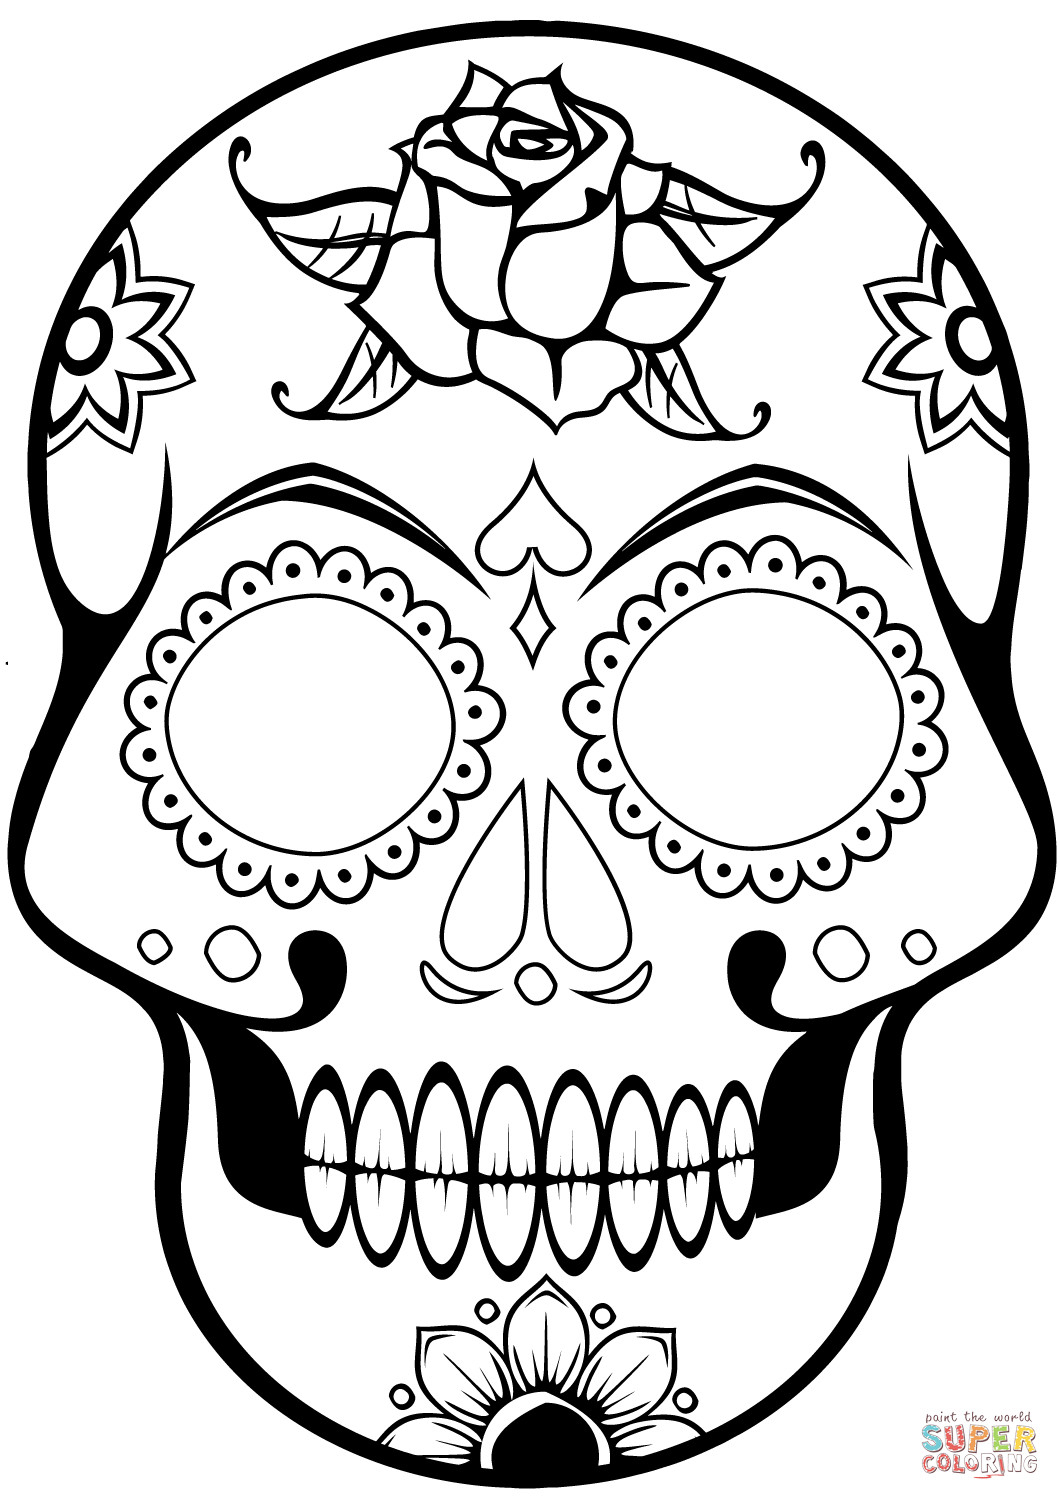 Coloring Pages : Free Printable Sugar Skulling Pages For Kids Sugar - Free Printable Sugar Skull Coloring Pages